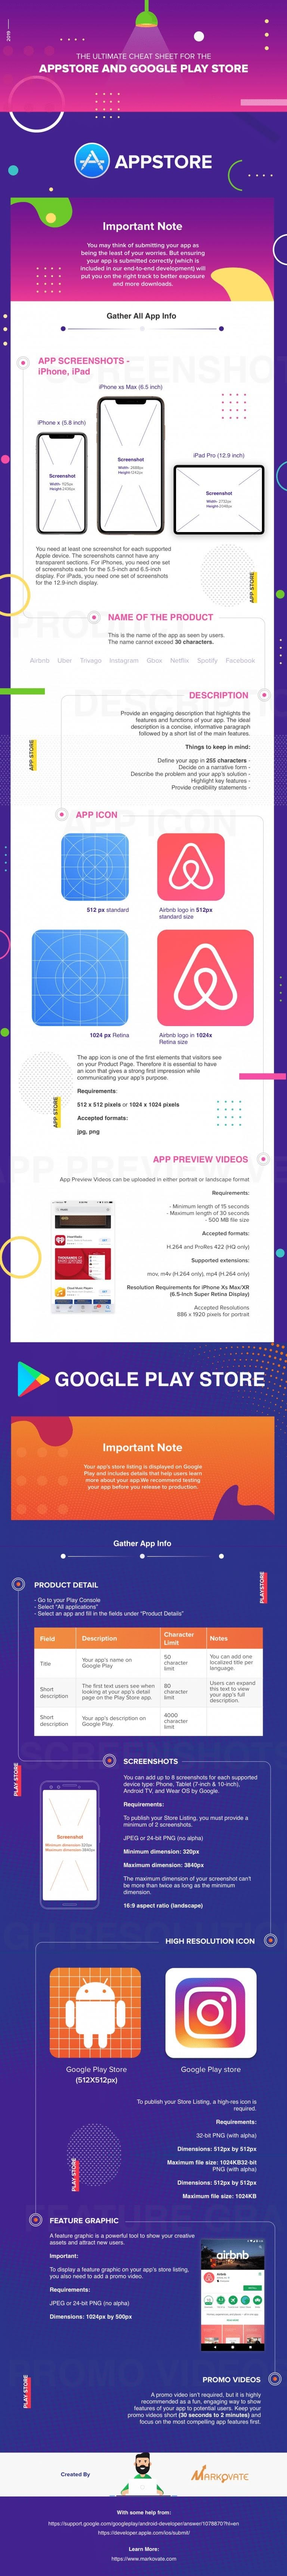 App Submission Cheat Sheet 2019 #infographic